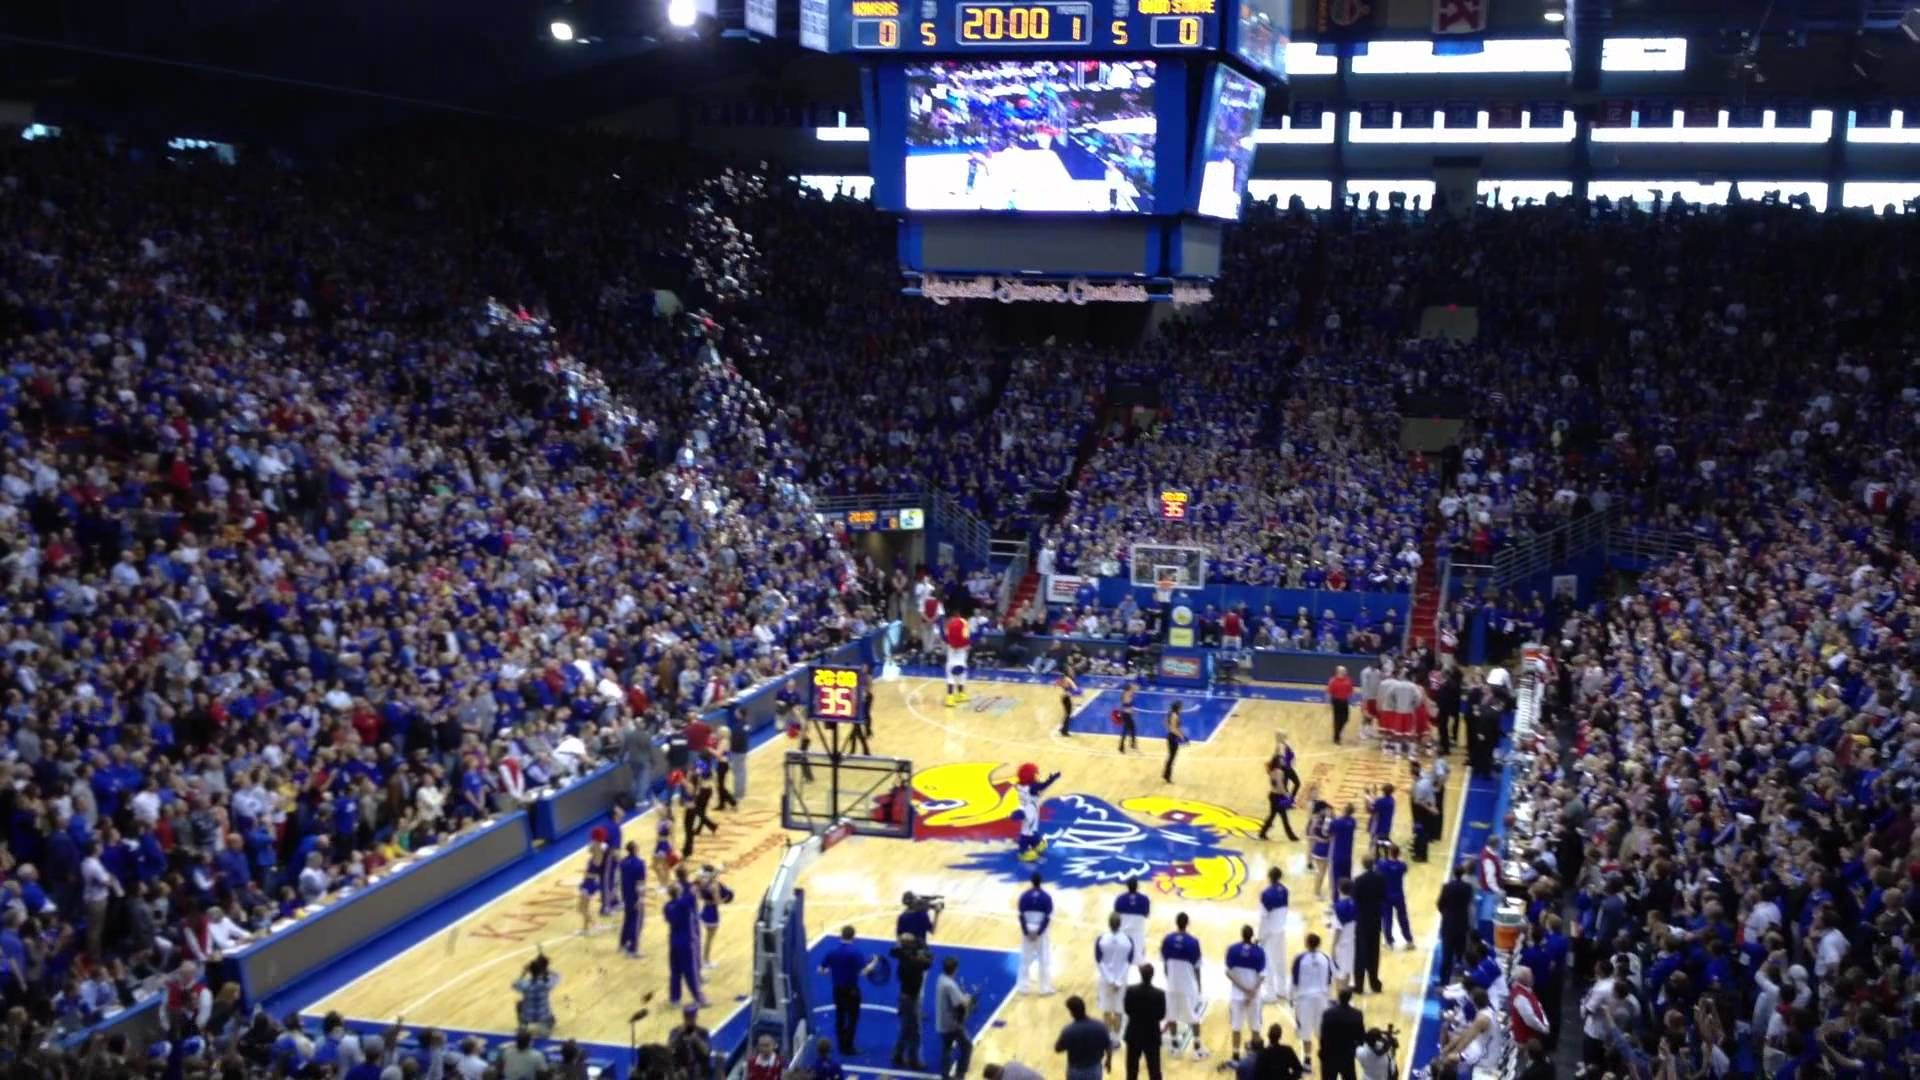 1920x1080 Jayhawks Basketball pre-game vs. Ohio State - YouTube